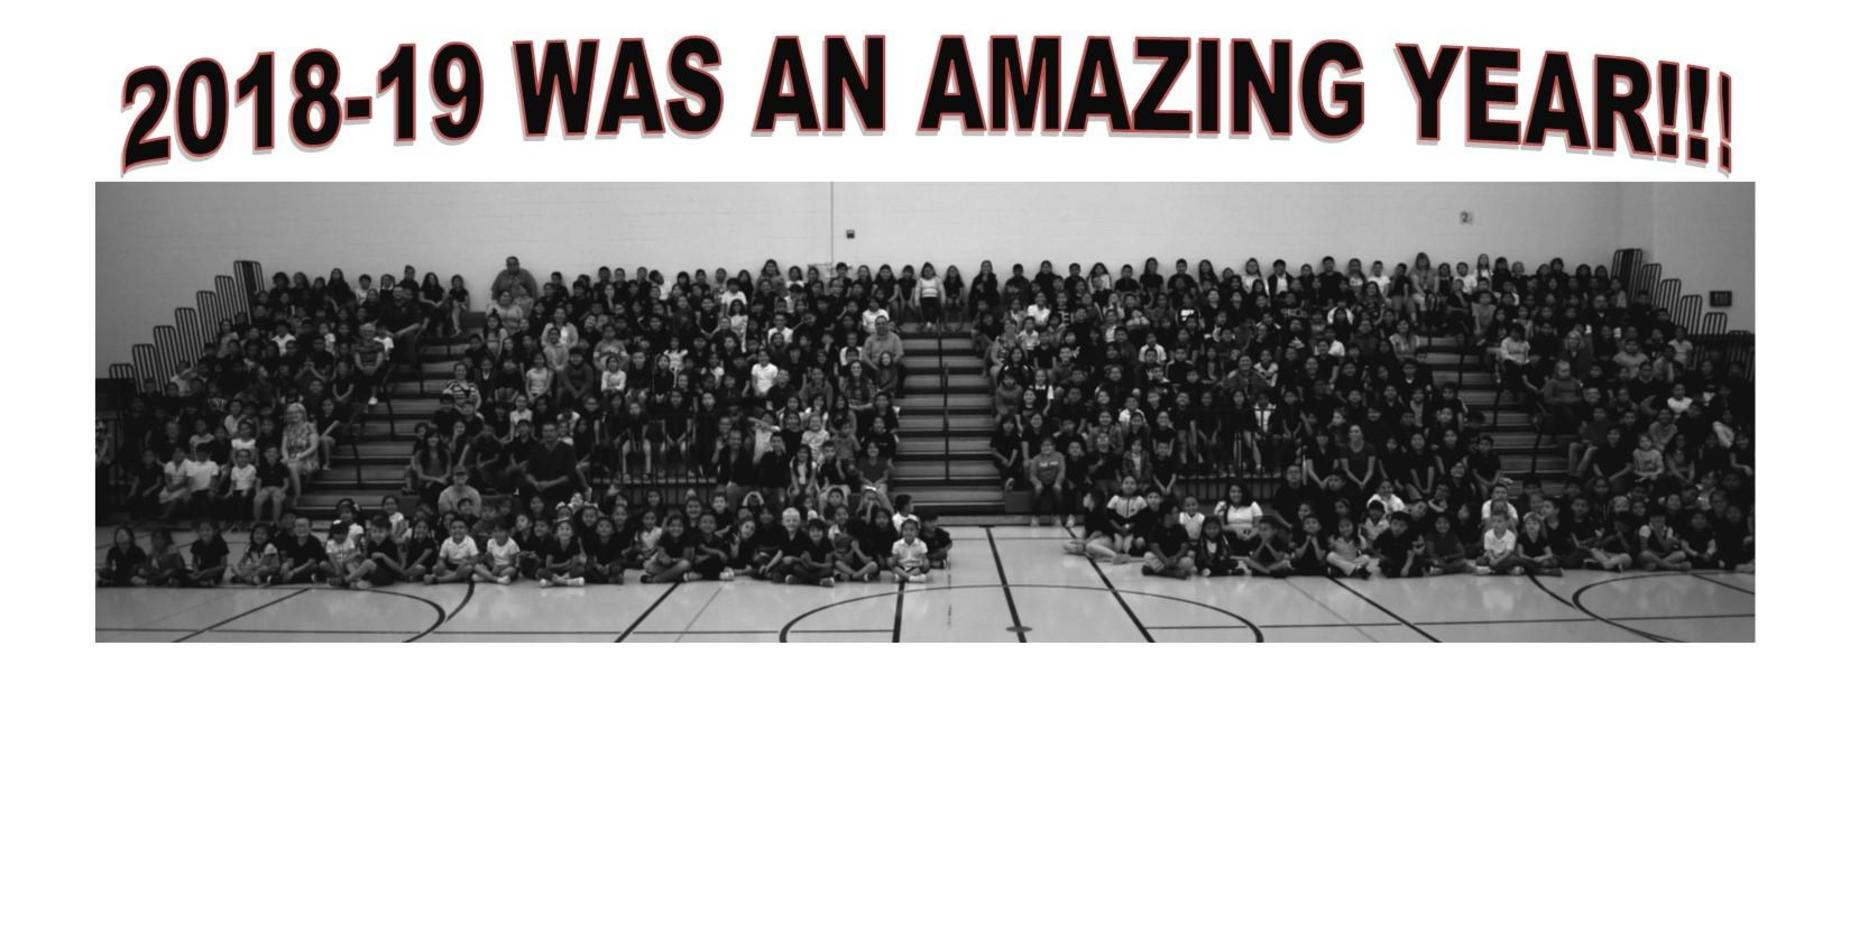 A picture with all the students from Roosevelt Elementary in the gym, sittitng in the bleachers.